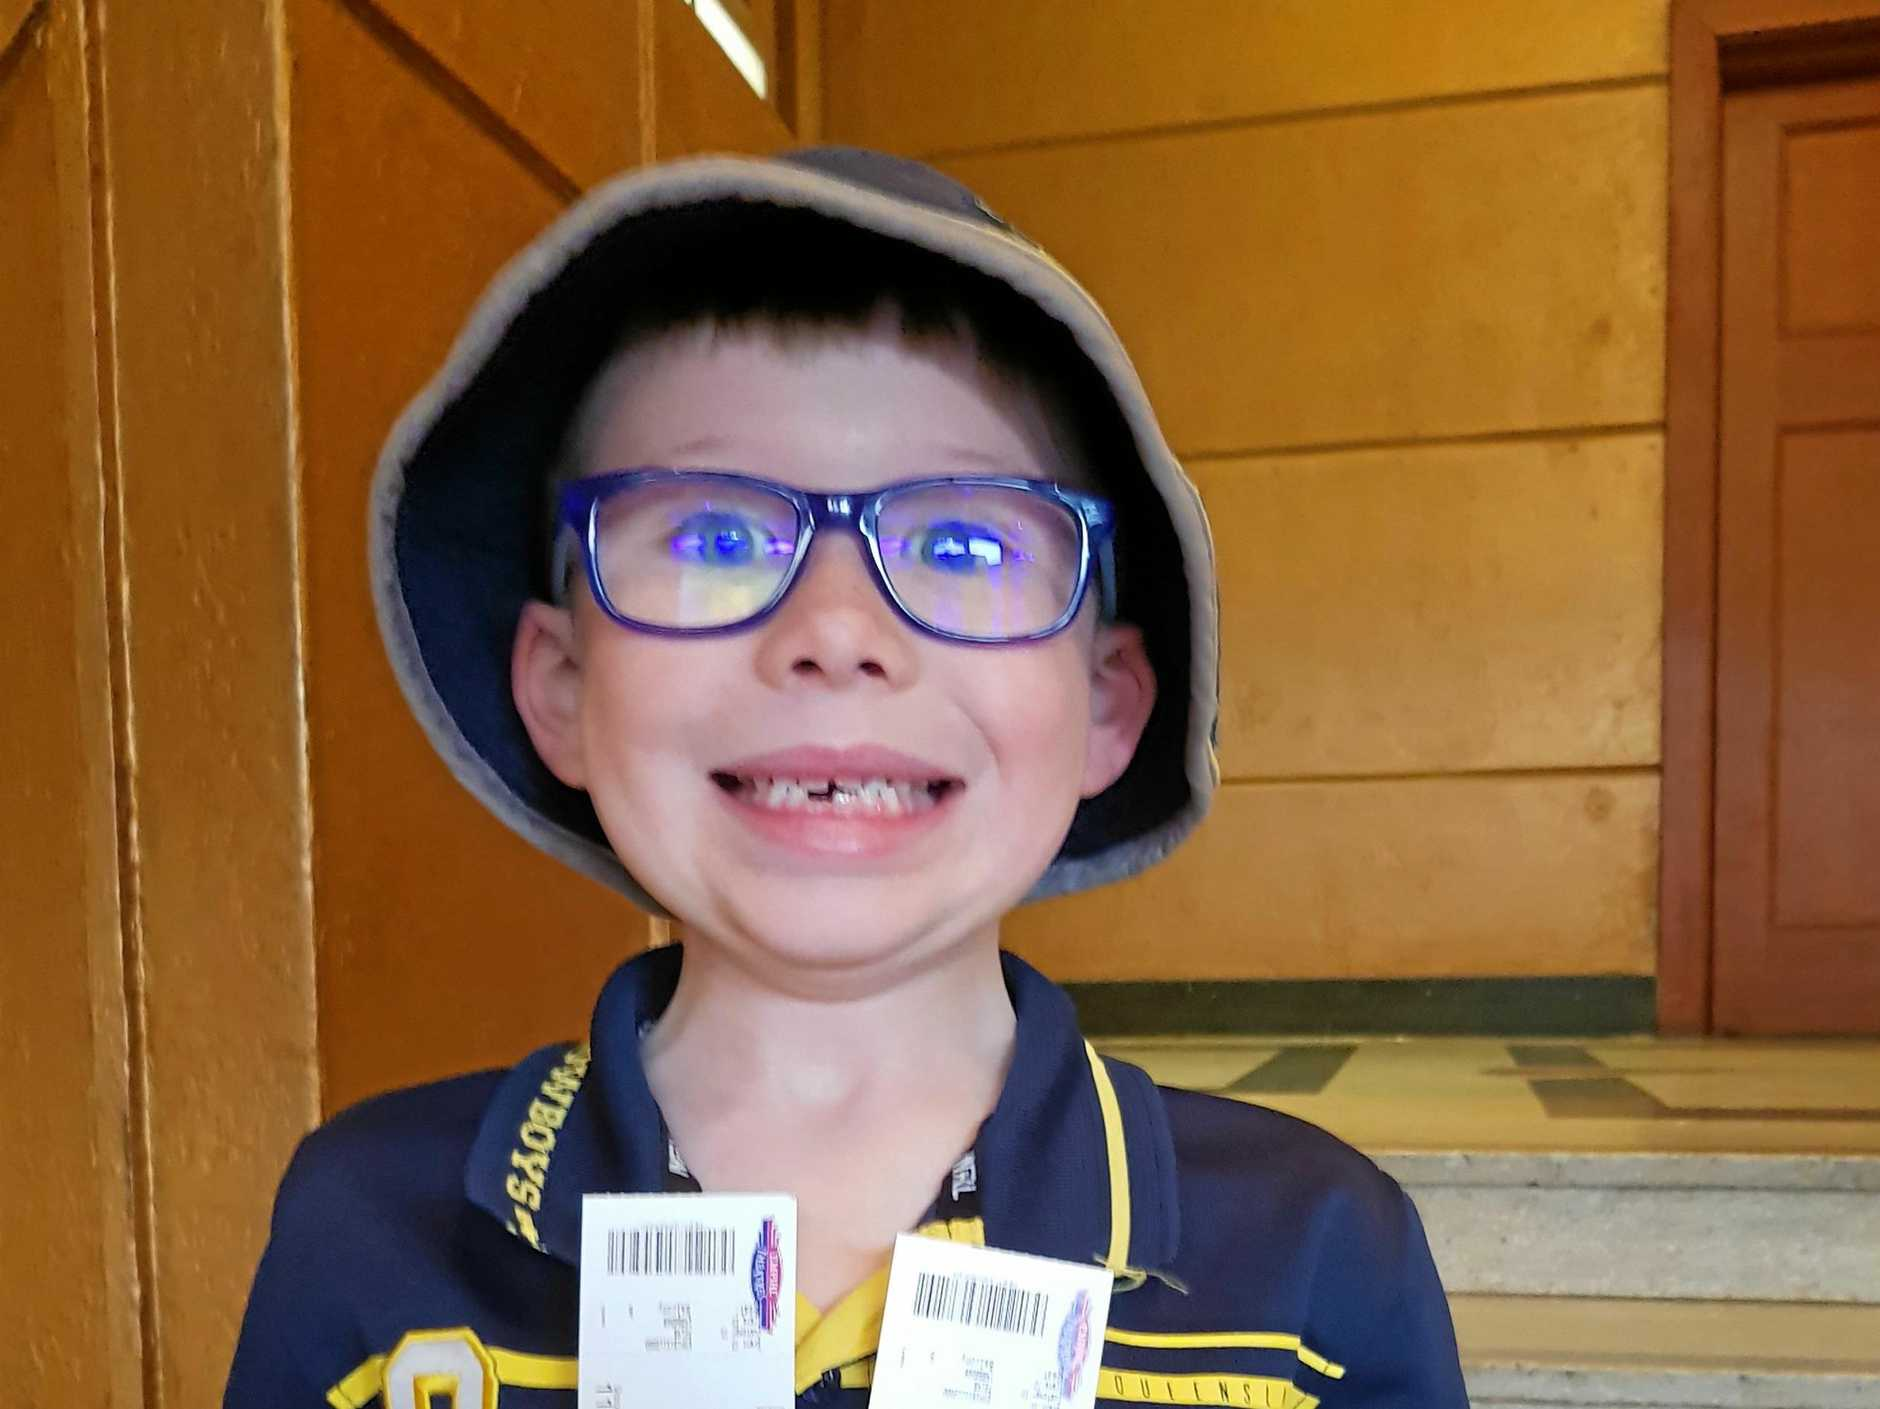 An excited Mason Fischer with two diamond tickets to see Jonanthan Thurston.